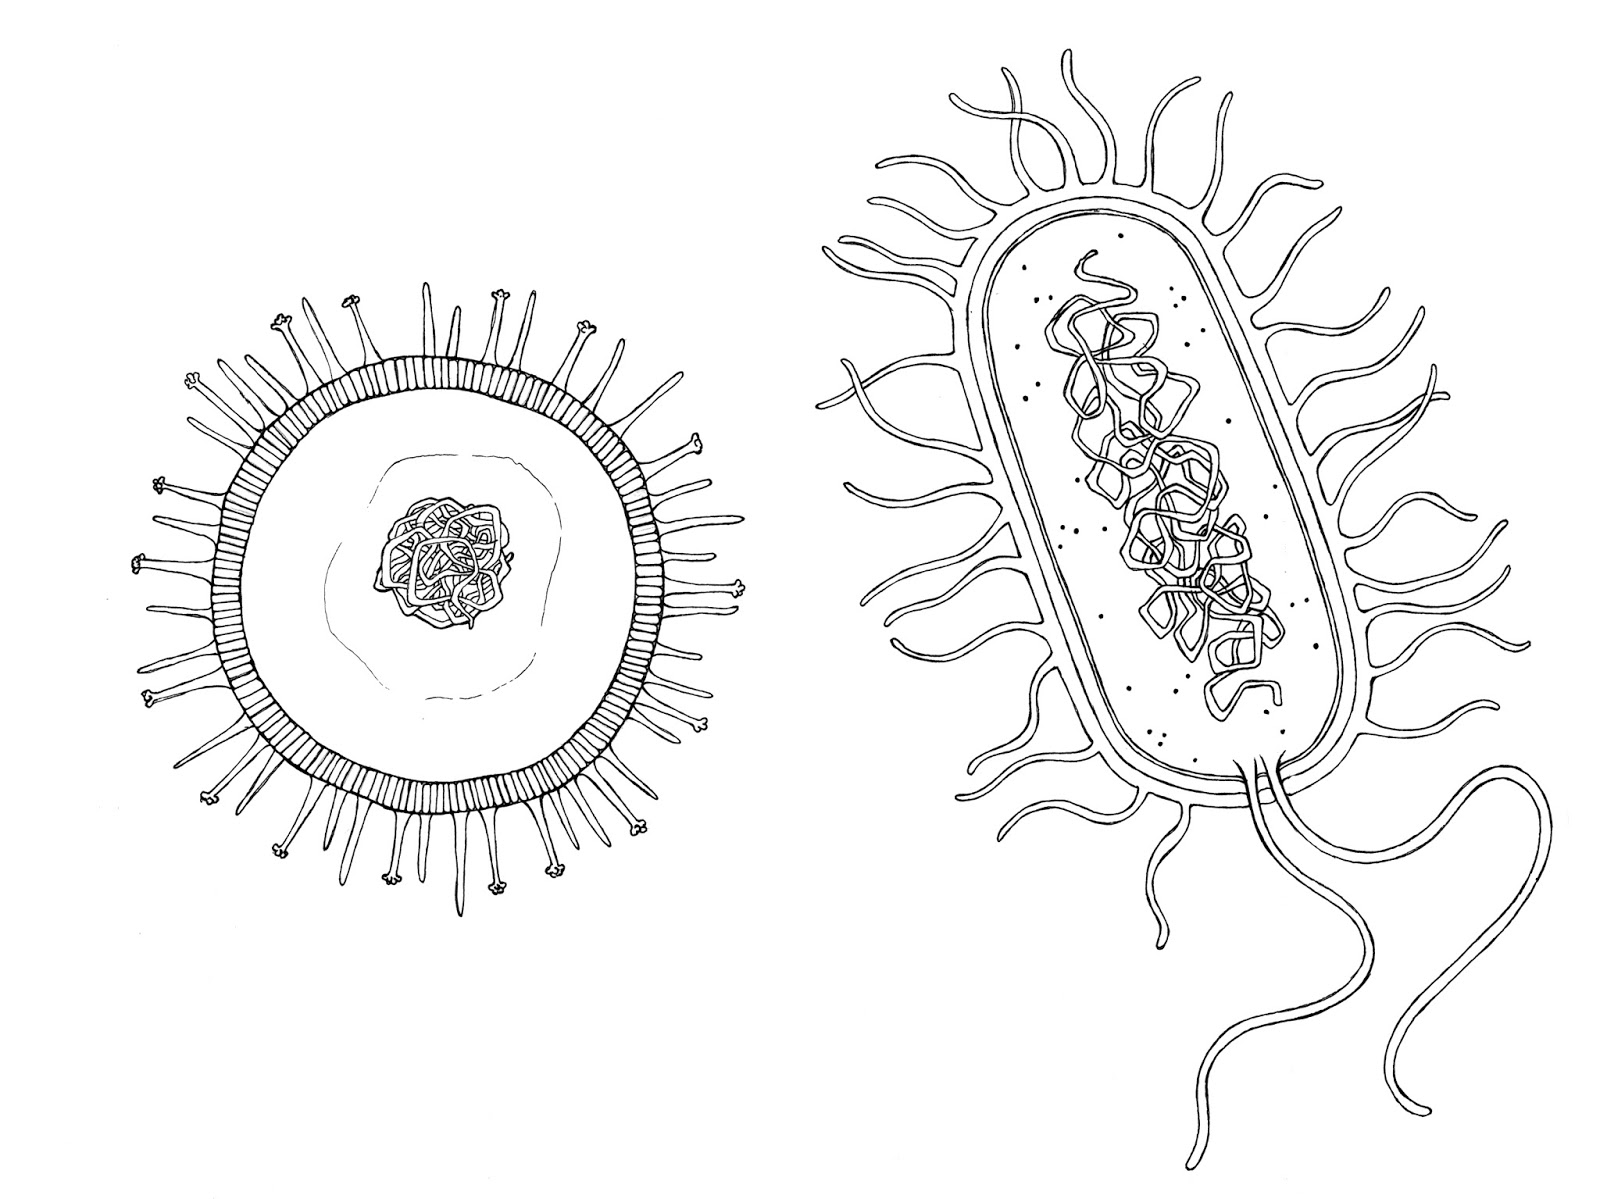 Bacteria line diagram wiring diagram for light switch bacteria drawing at getdrawings com free for personal use bacteria rh getdrawings com bacteria diagram unlabeled ccuart Image collections